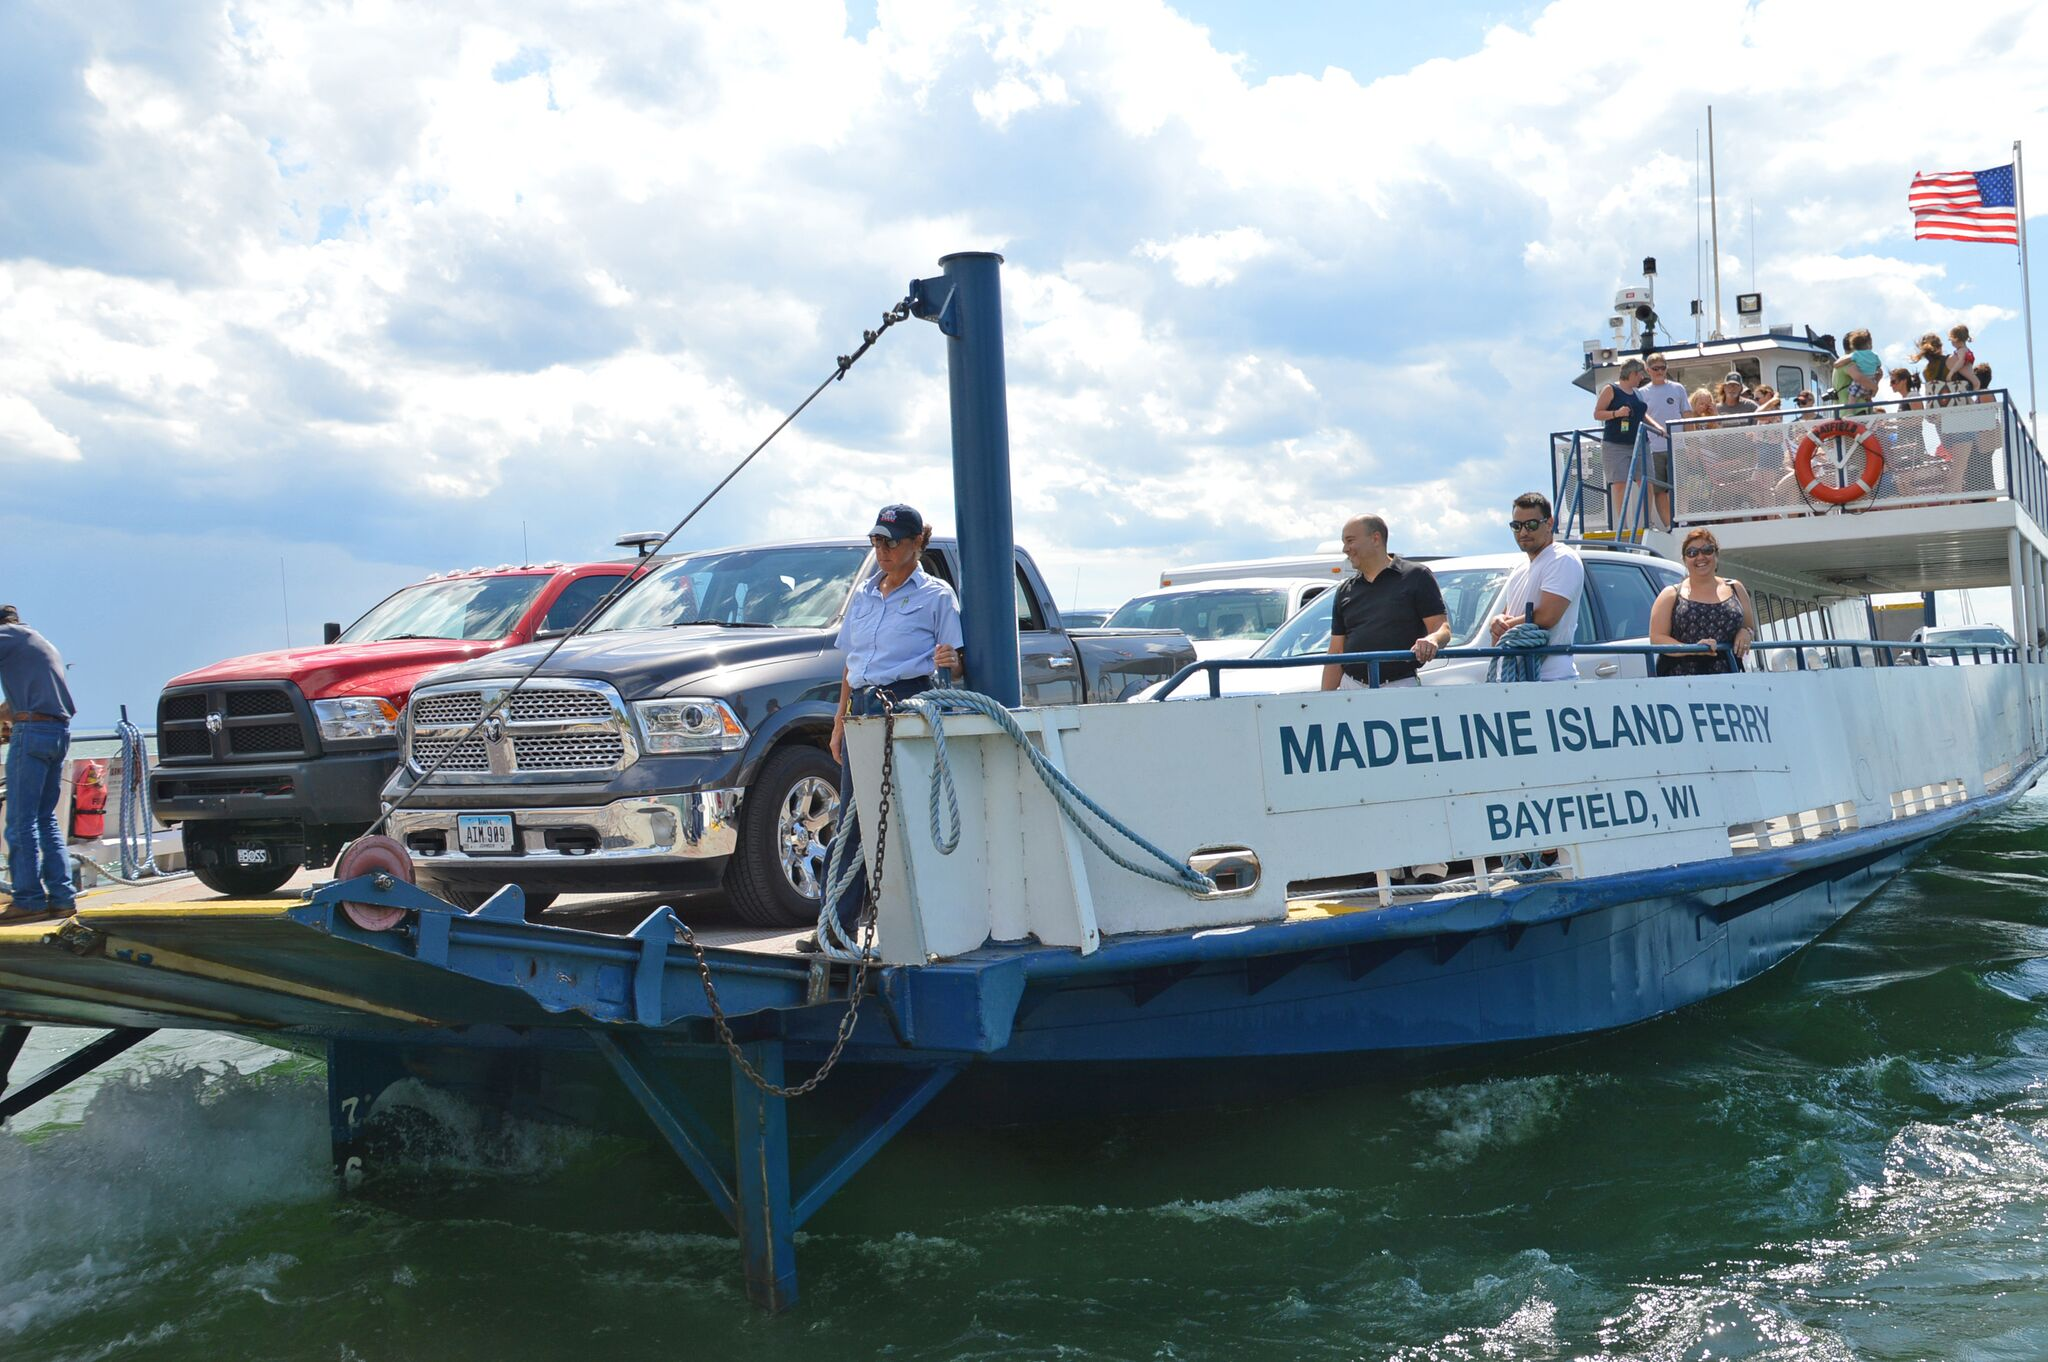 Ferry Safety Information